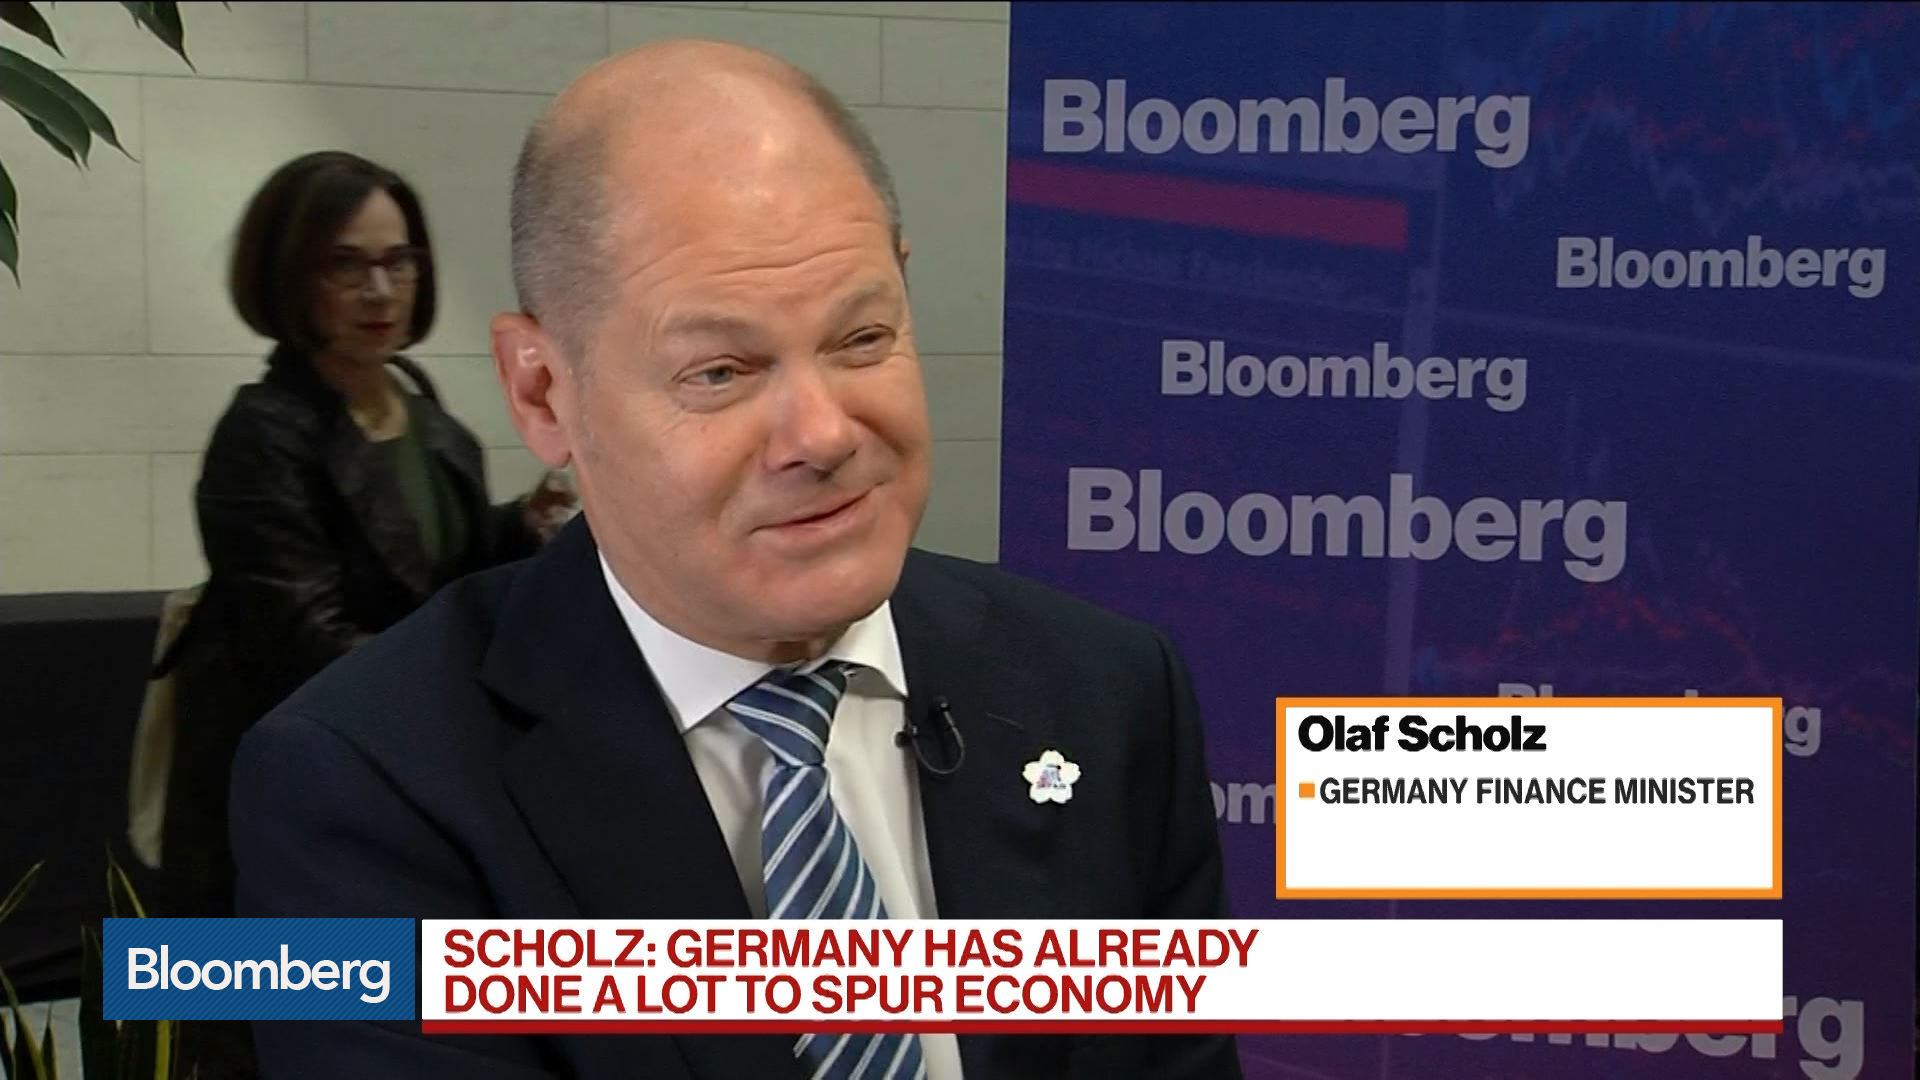 German Finance Minister Says a Lot Has Been Done to Spur Economy